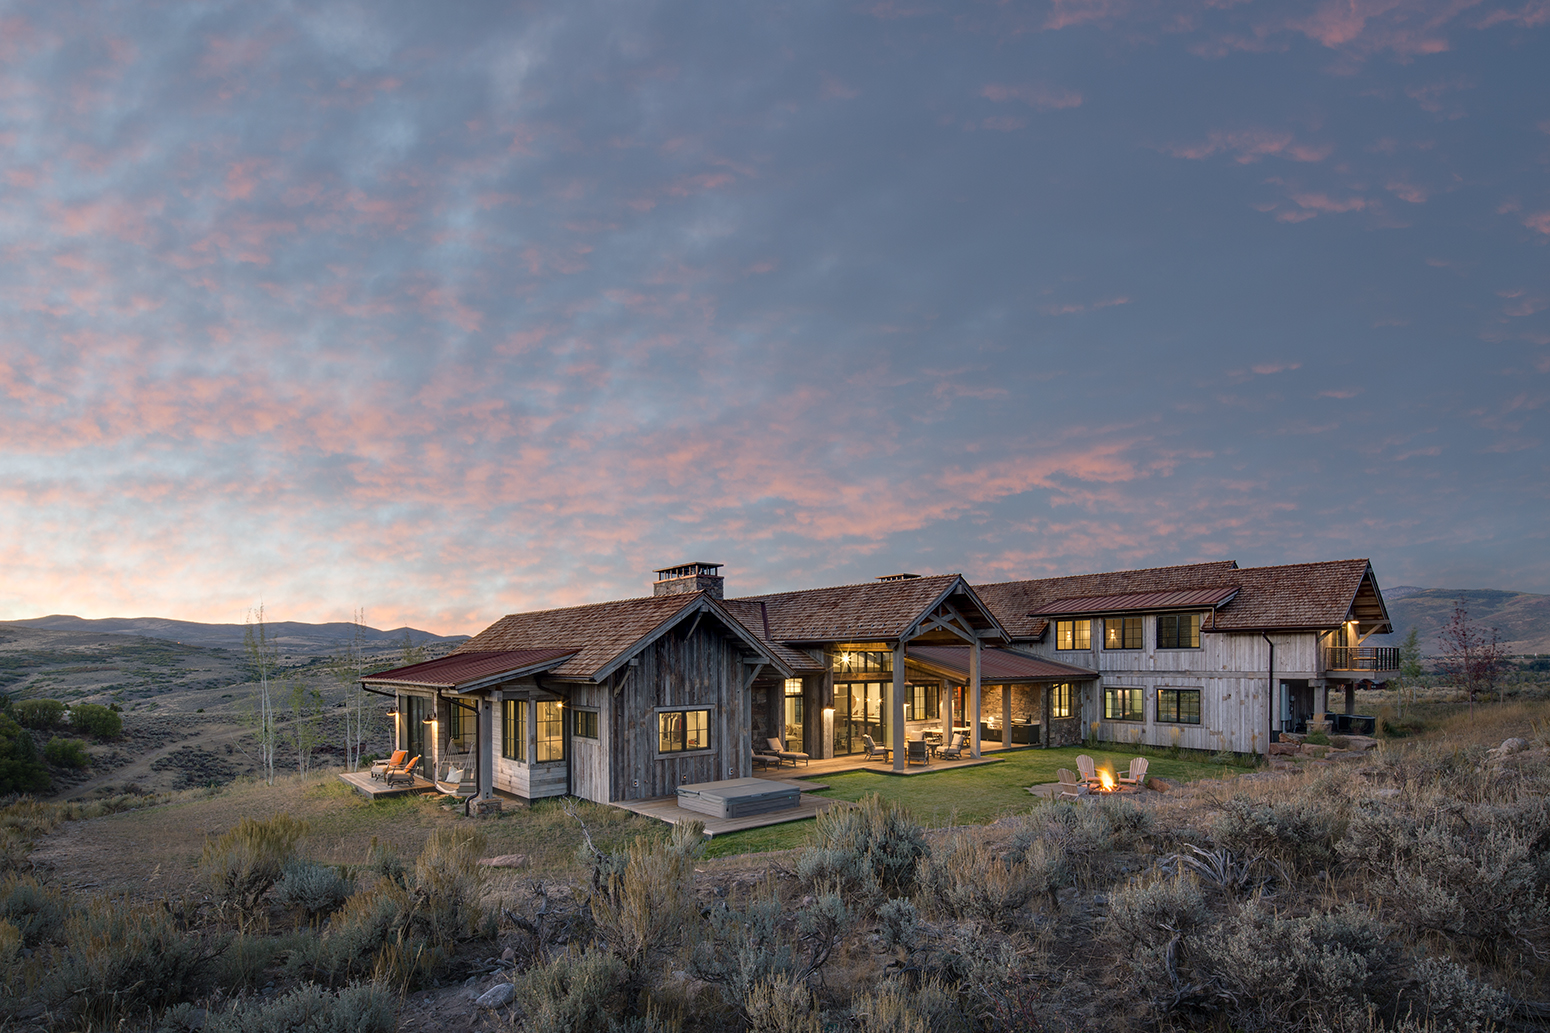 This is an exterior photograph of a new, rustic residence at sunset situated in the foorthills near Park City, Utah, surrounded by sage and rolling hills. The lights are on in the home and their is transparence in the windows allowing the viewer to see in to the house. There are colors of blue, magenta and pink in the skies and their is an outdoor fireplace which is lit and surrounded by two Adirondack chairs. The house is clad in reclaimed timber and blends in naturally with the surrounding landscape.